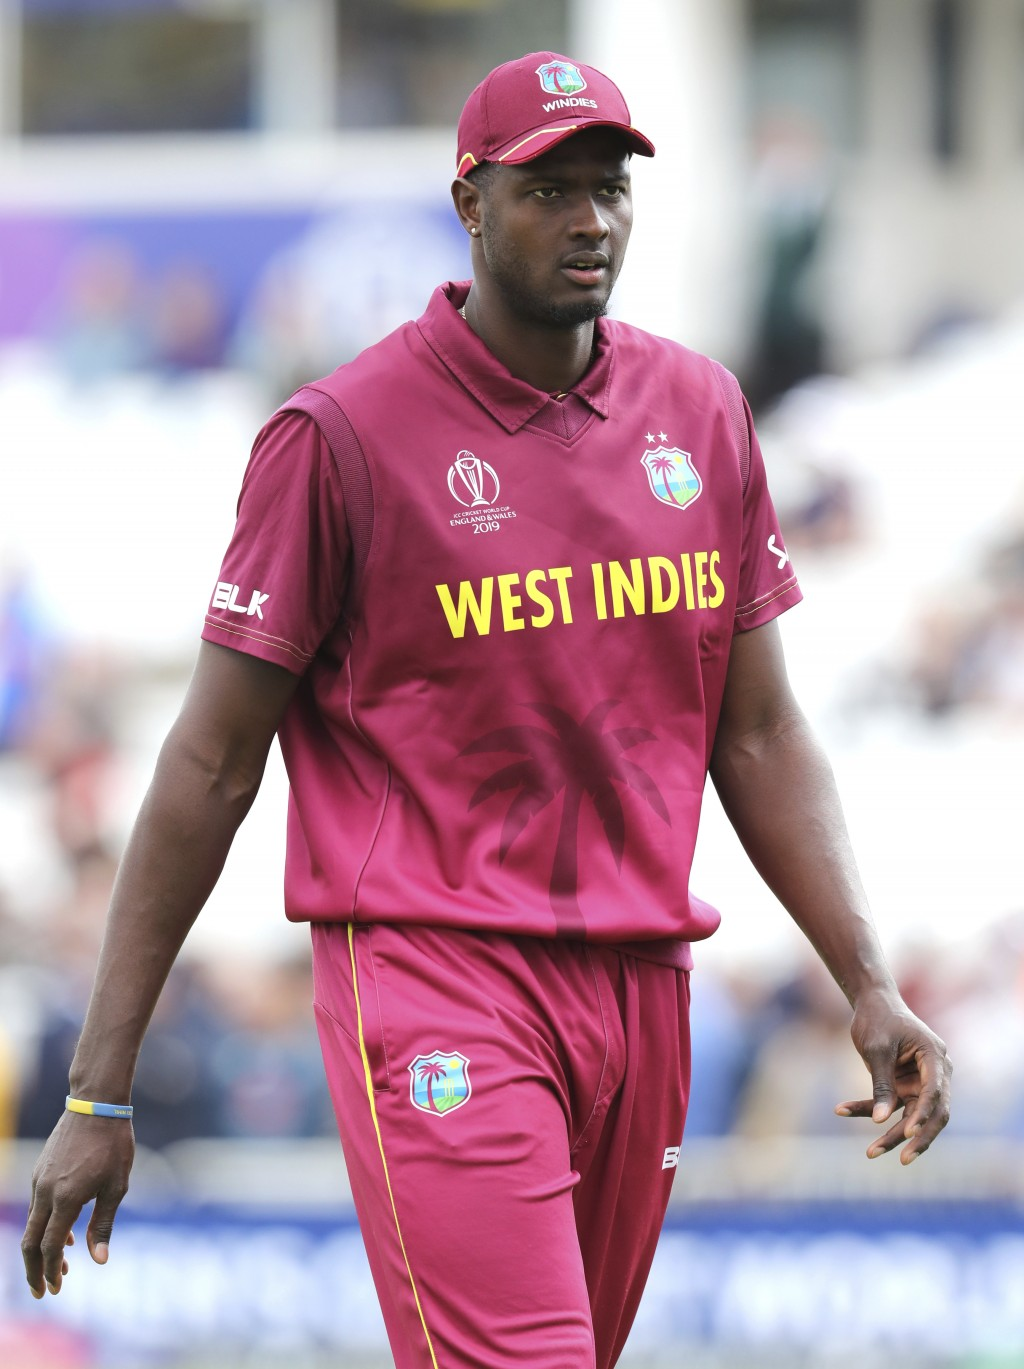 West Indies' captain Jason Holder before the Cricket World Cup match between Australia and West Indies at Trent Bridge in Nottingham, Thursday, June 6